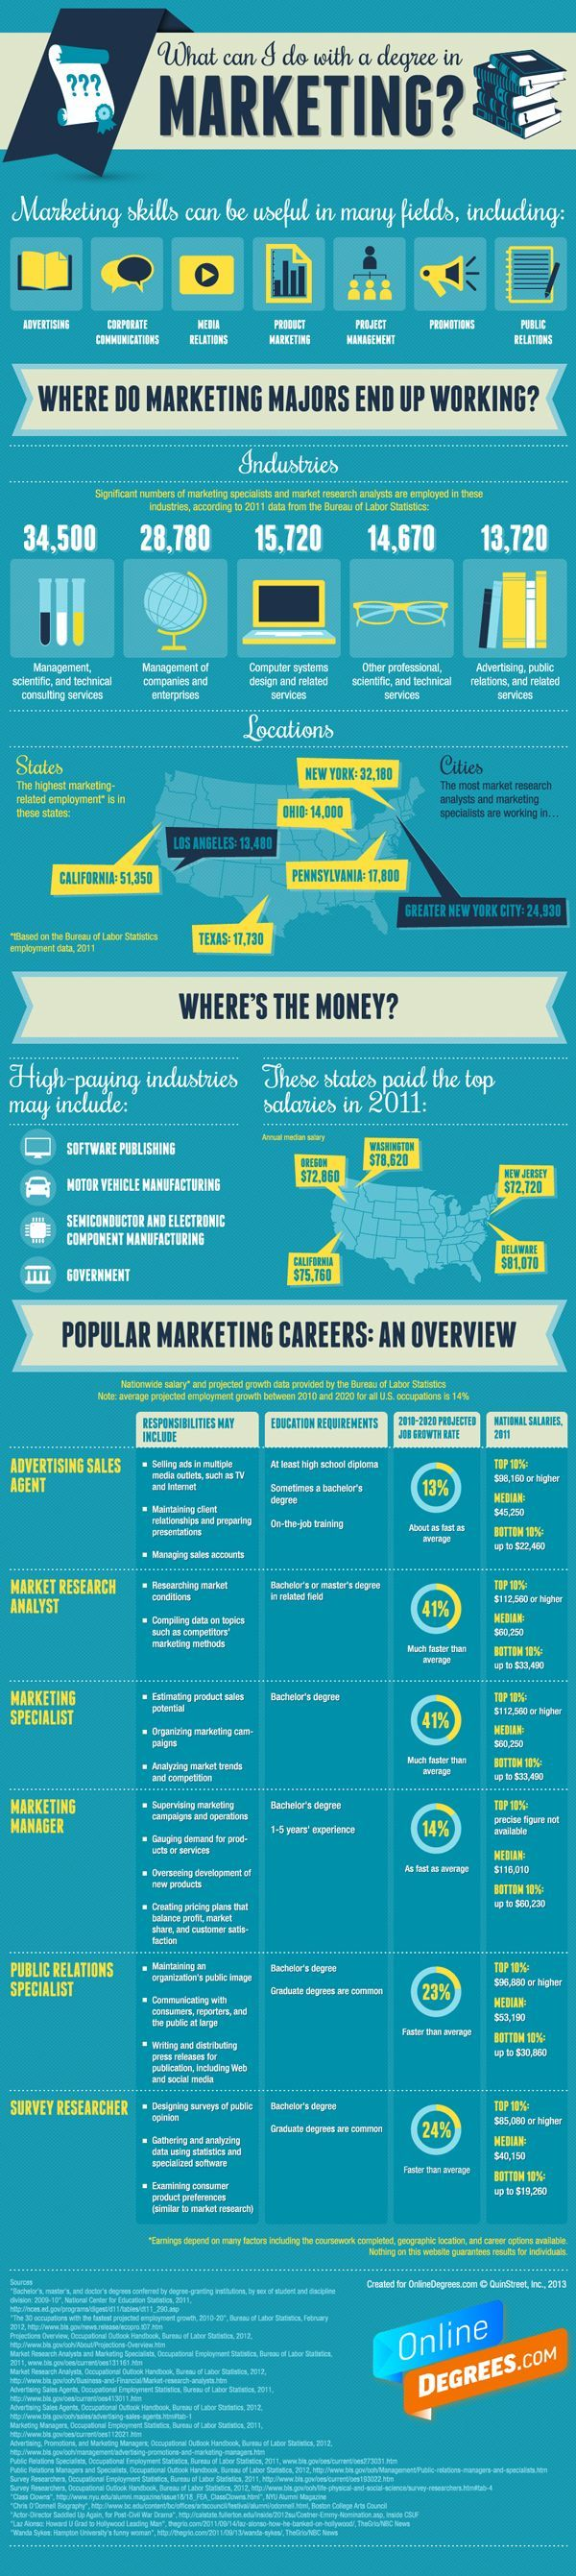 What Can I Do With a Degree in Marketing? [infographic]    http://blogs.payscale.com/salary_report_kris_cowan/2013/03/what-can-i-do-with-a-degree-in-marketing-infographic.html